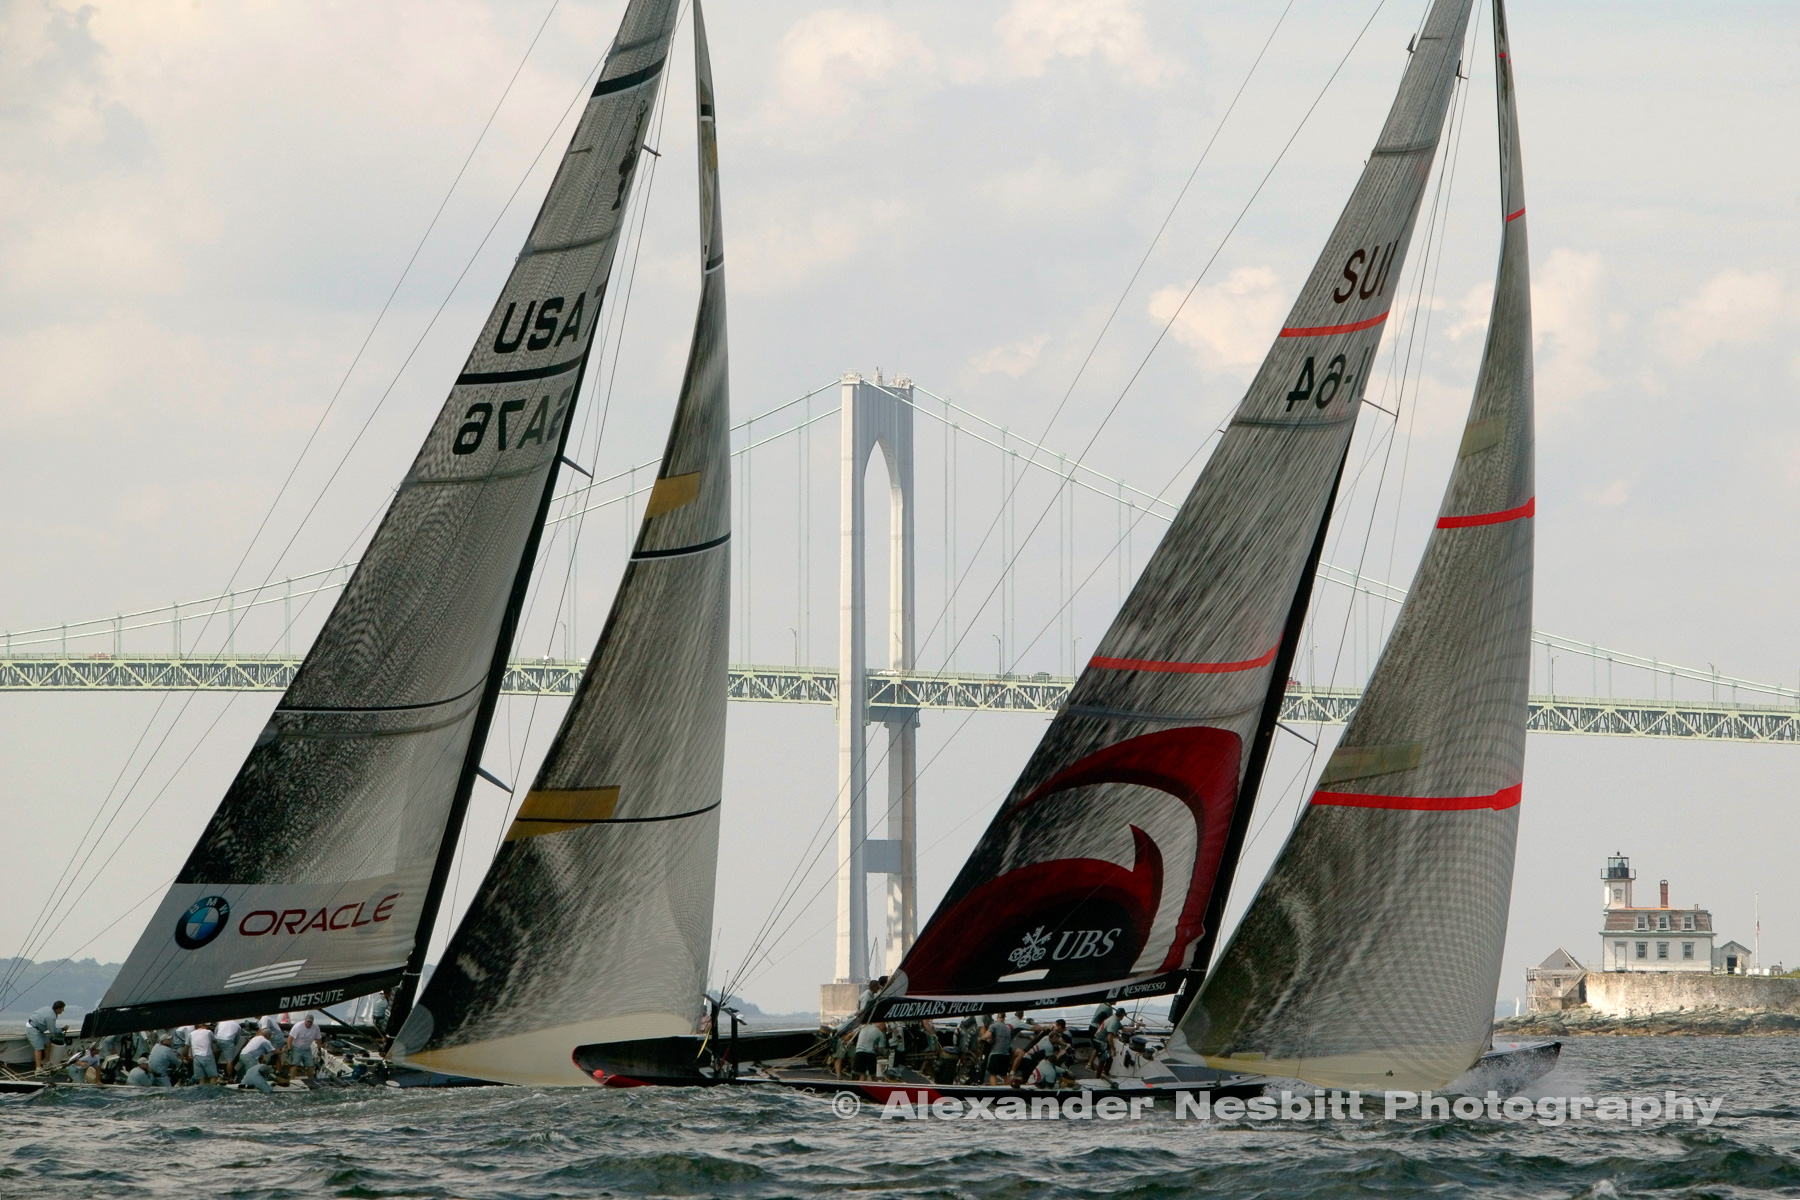 USA, Newport, RI 2004 - America's cup boats returned to Newport for the first time since the cup left in 1983.  The race for the UBS trophy was the first course close enough to land for spectators to watch the drama right in front of the Newport Bridge.